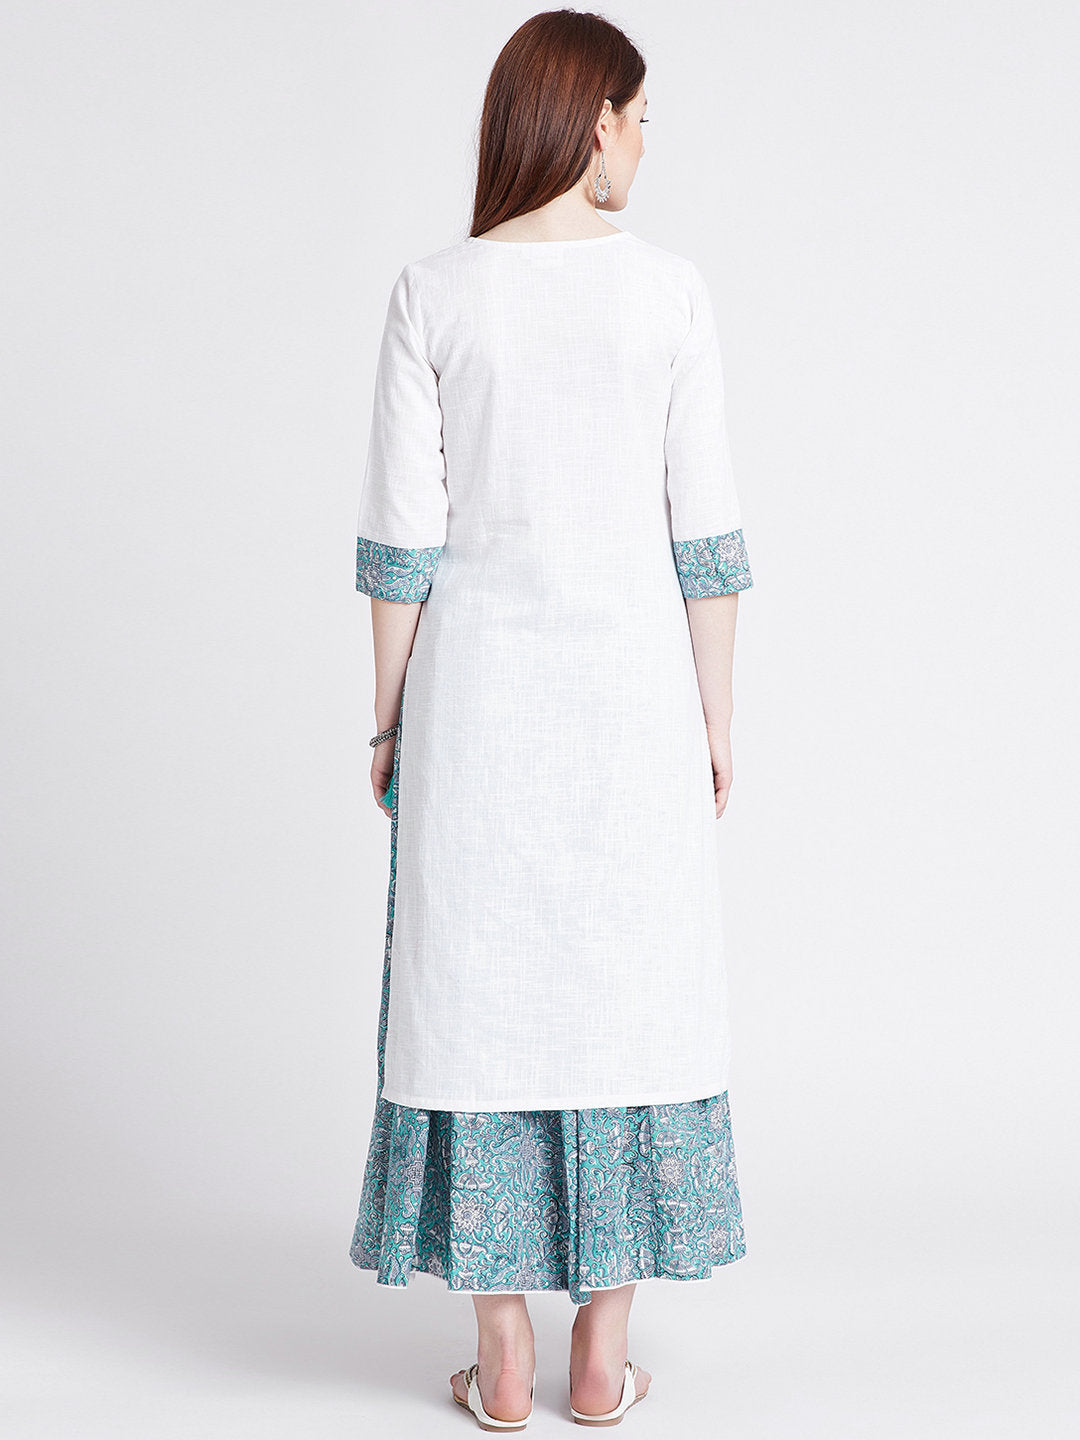 Hand block printed skirt with white long cotton kurta with detailing on neck, sleeves & slits